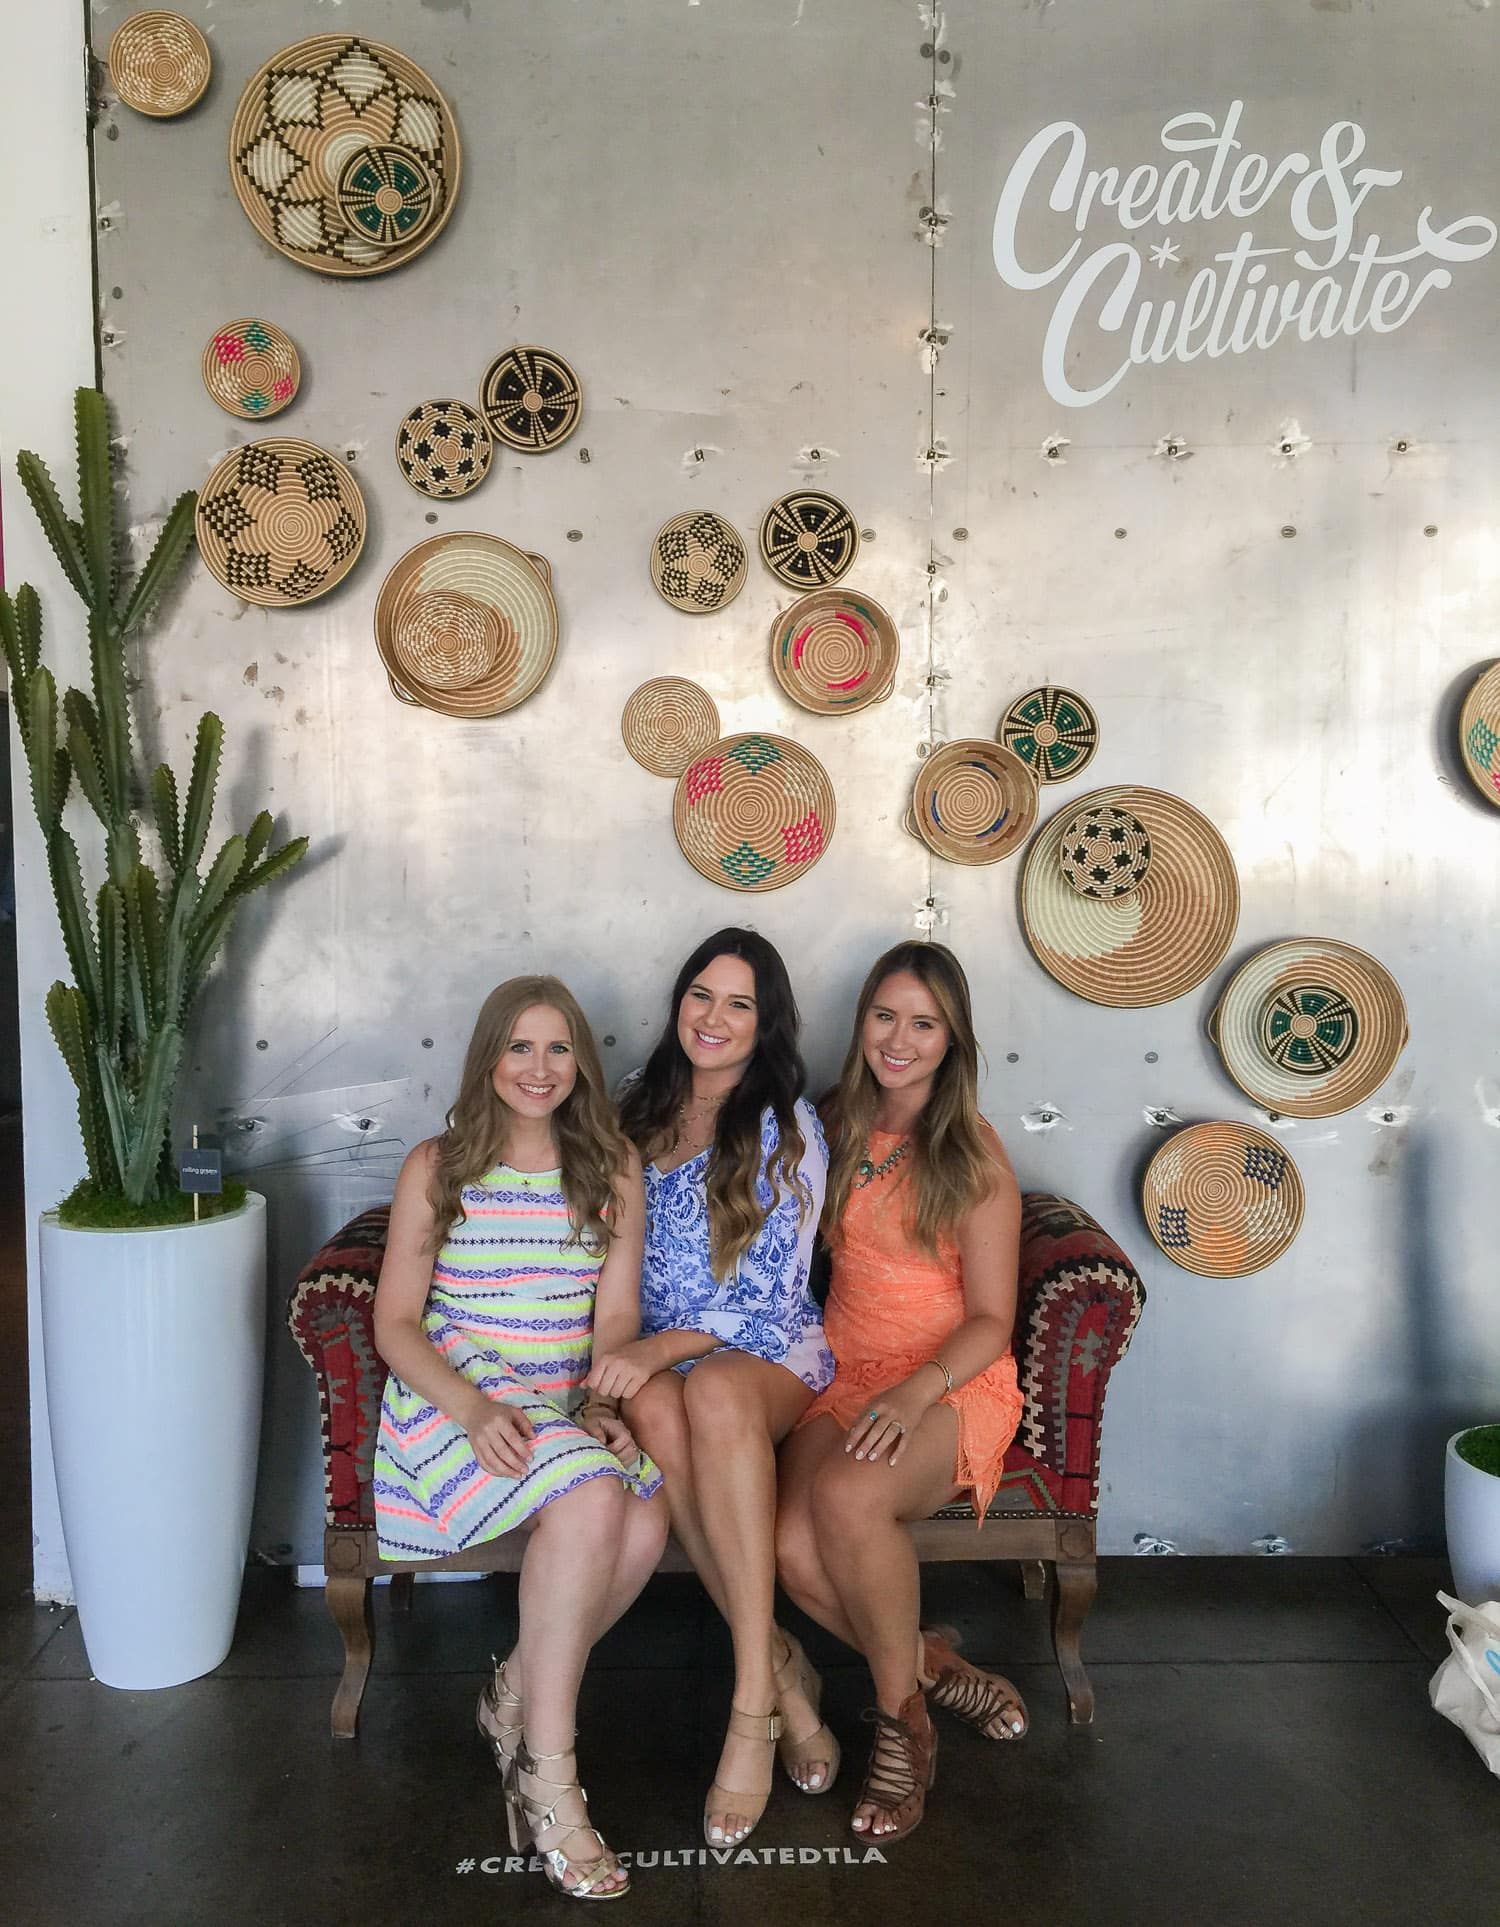 Beauty and fashion bloggers Ashley Brooke Nicholas, Mash Elle, and Boho Nouveau | Create + Cultivate Los Angeles 2016 Conference Recap + Review | Beauty and Style Blogger Ashley Brooke Nicholas